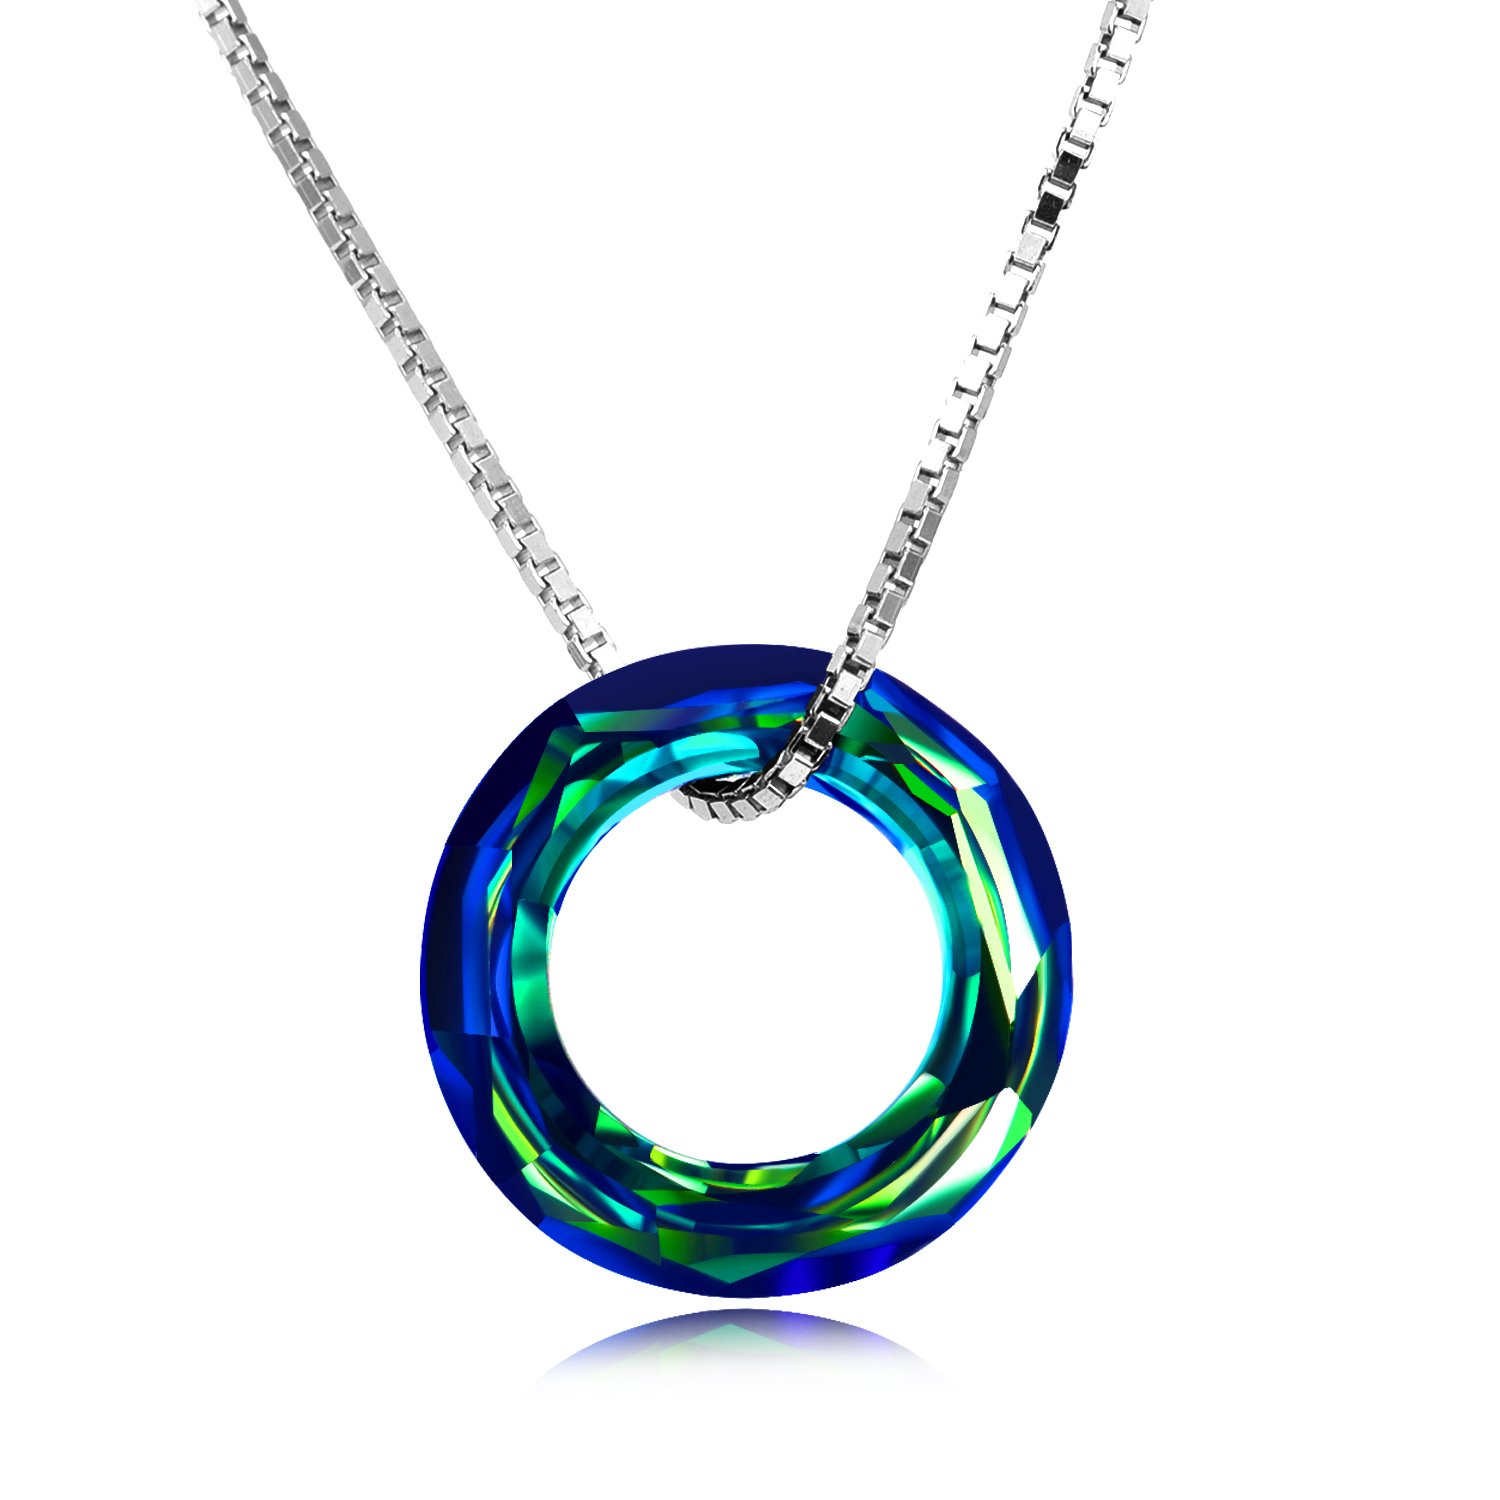 316f9aecc912c8 AOBOCO Blue Circle Crystal Necklace 925 Sterling Silver Chain, Multi Color  Round Simple Pendants with Swarovski Crystals Fine Jewelry Gift for Women  Girls ...